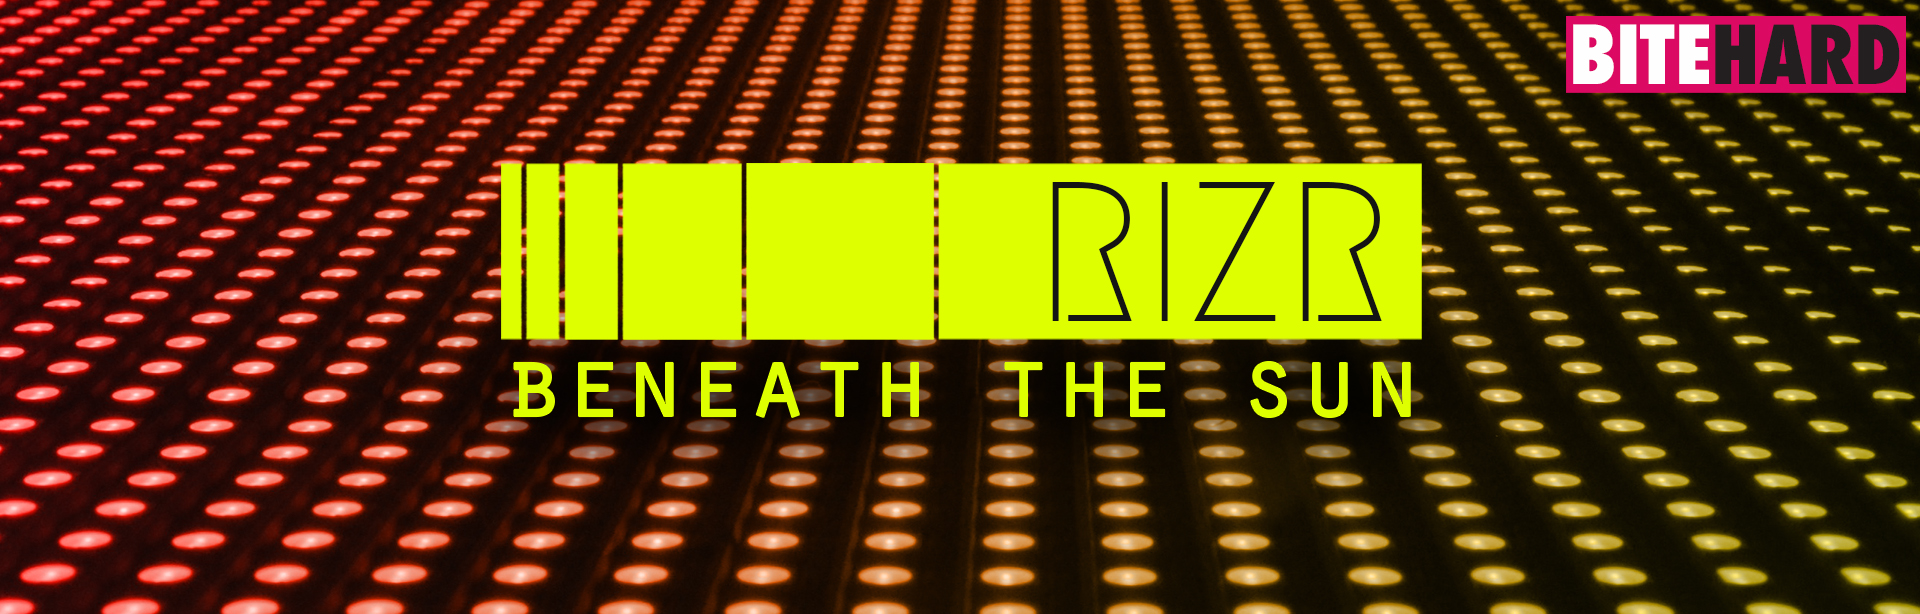 Beneath The Sun: Rizr - Bite Hard